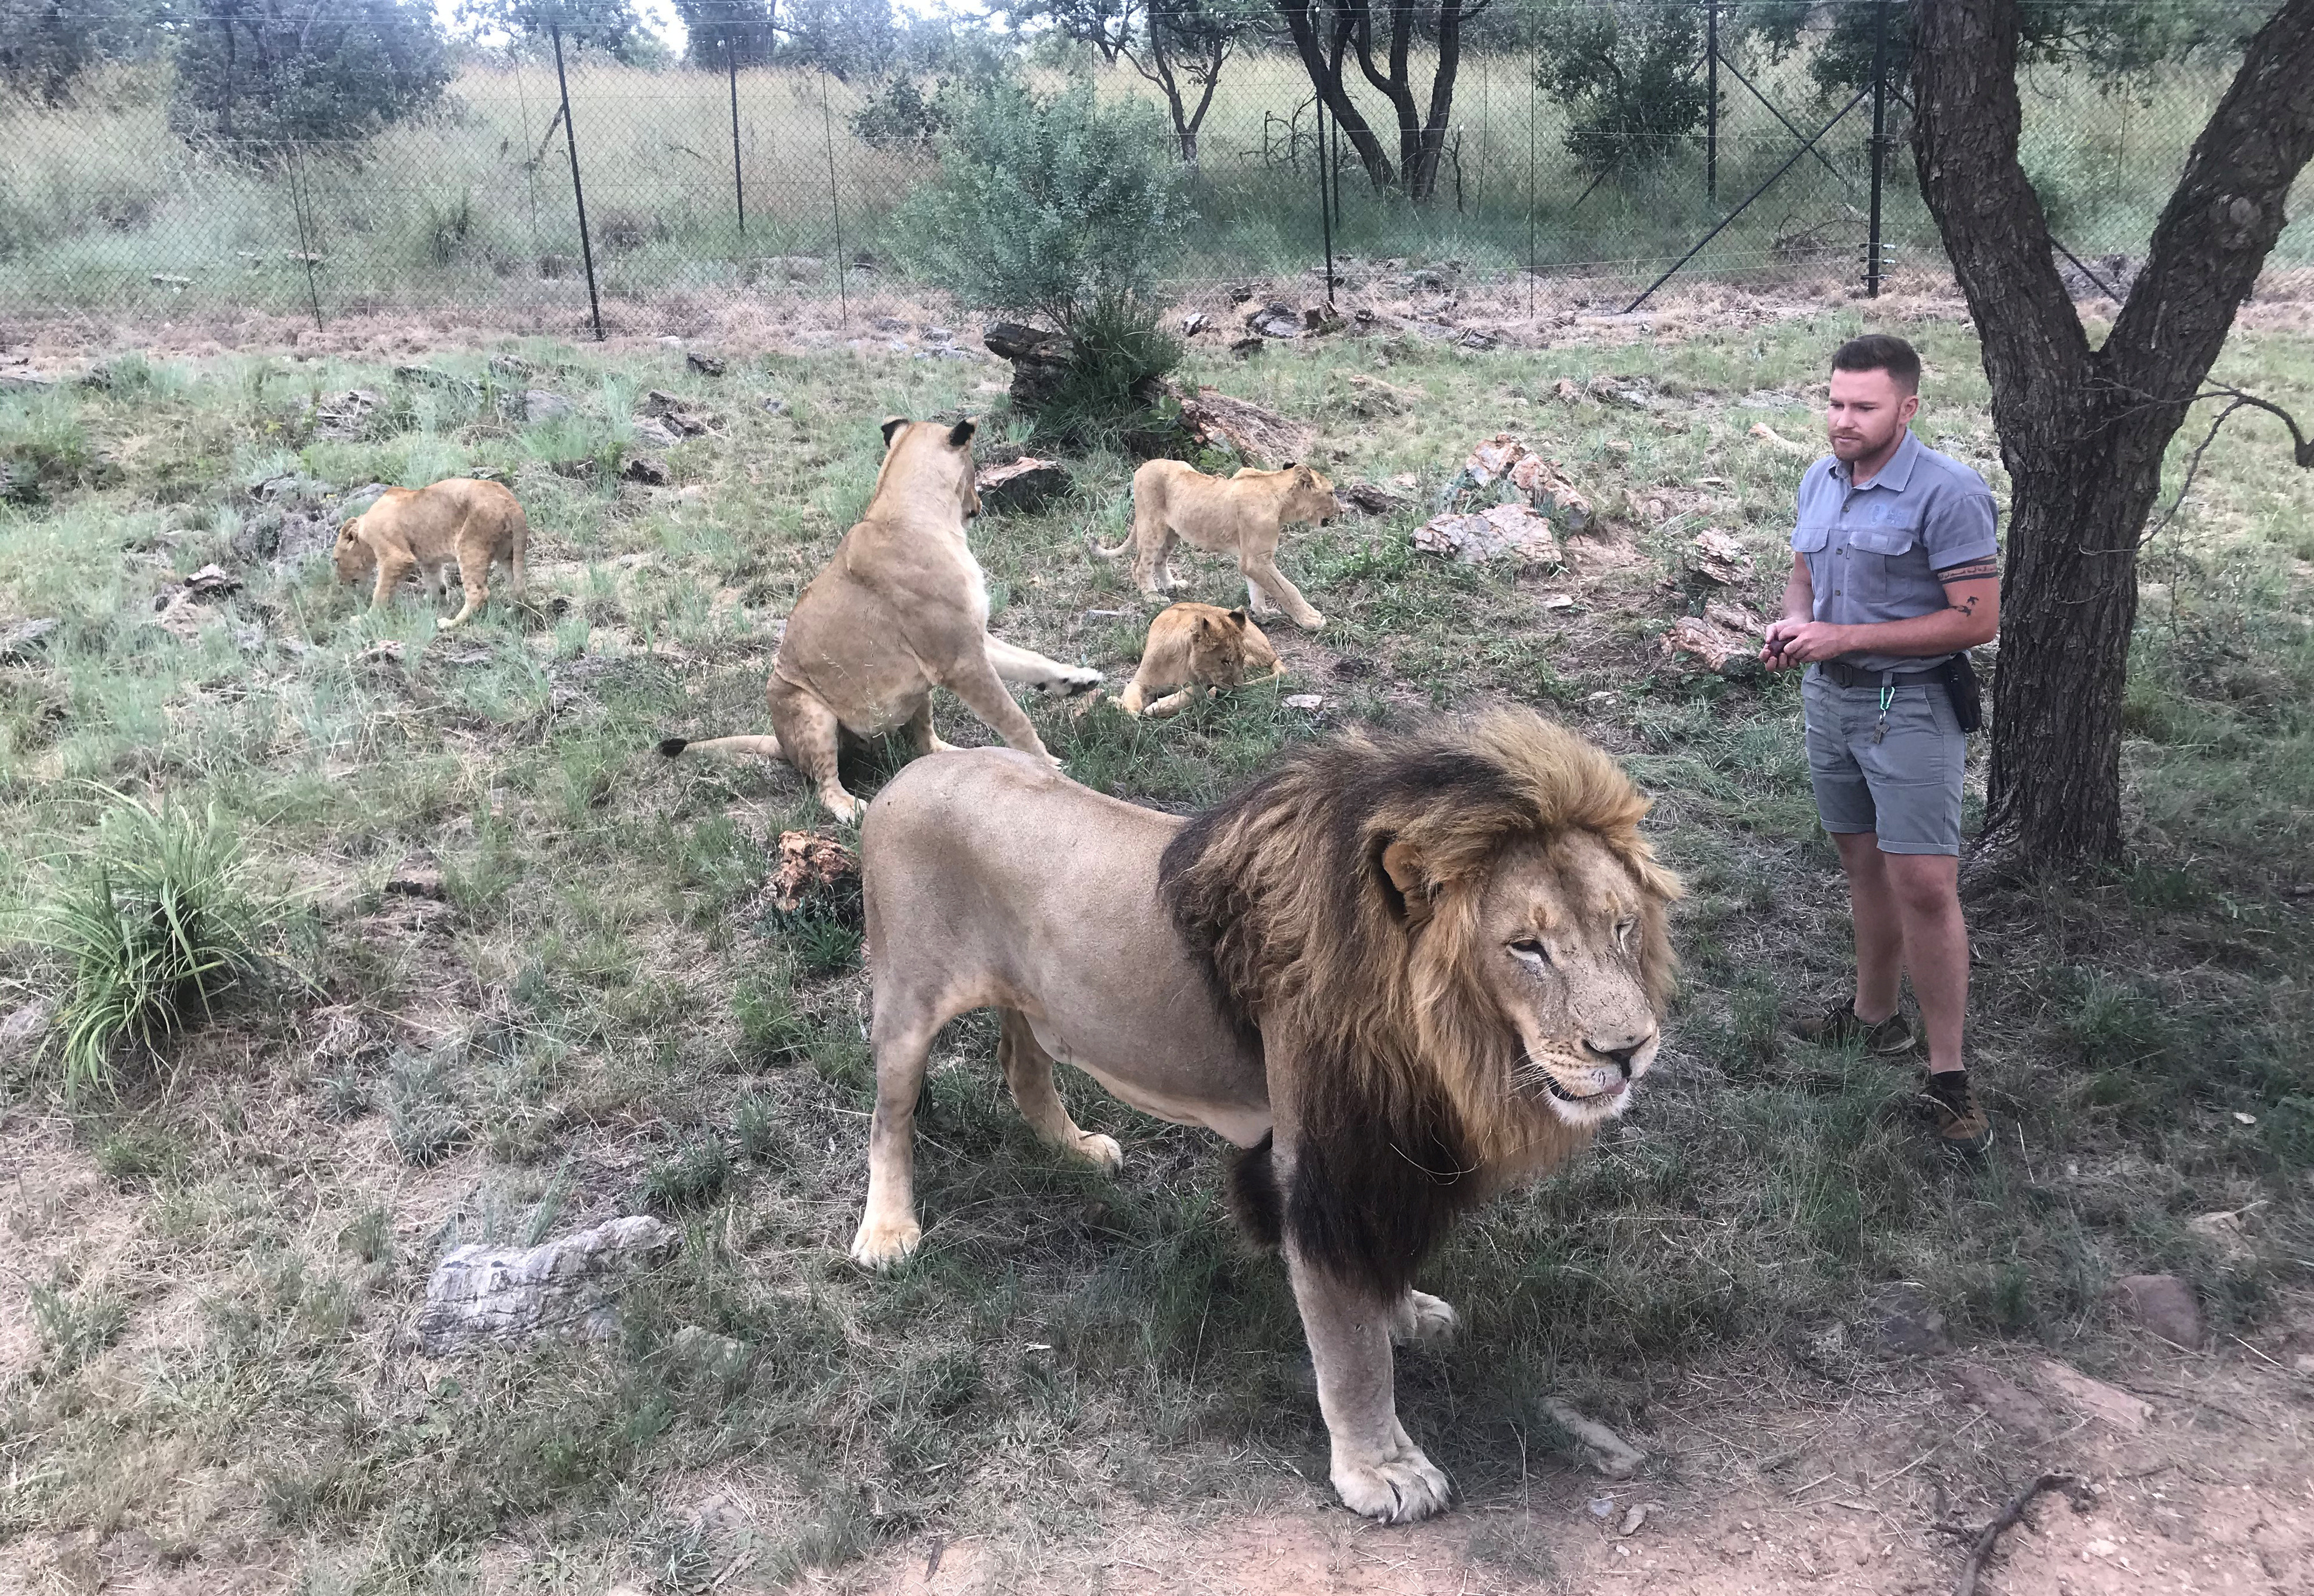 Wildlife trainer Shandor Larenty feeds and pets a pride of lions at the Lion and Safari Park near Johannesburg, South Africa, February 7, 2020.